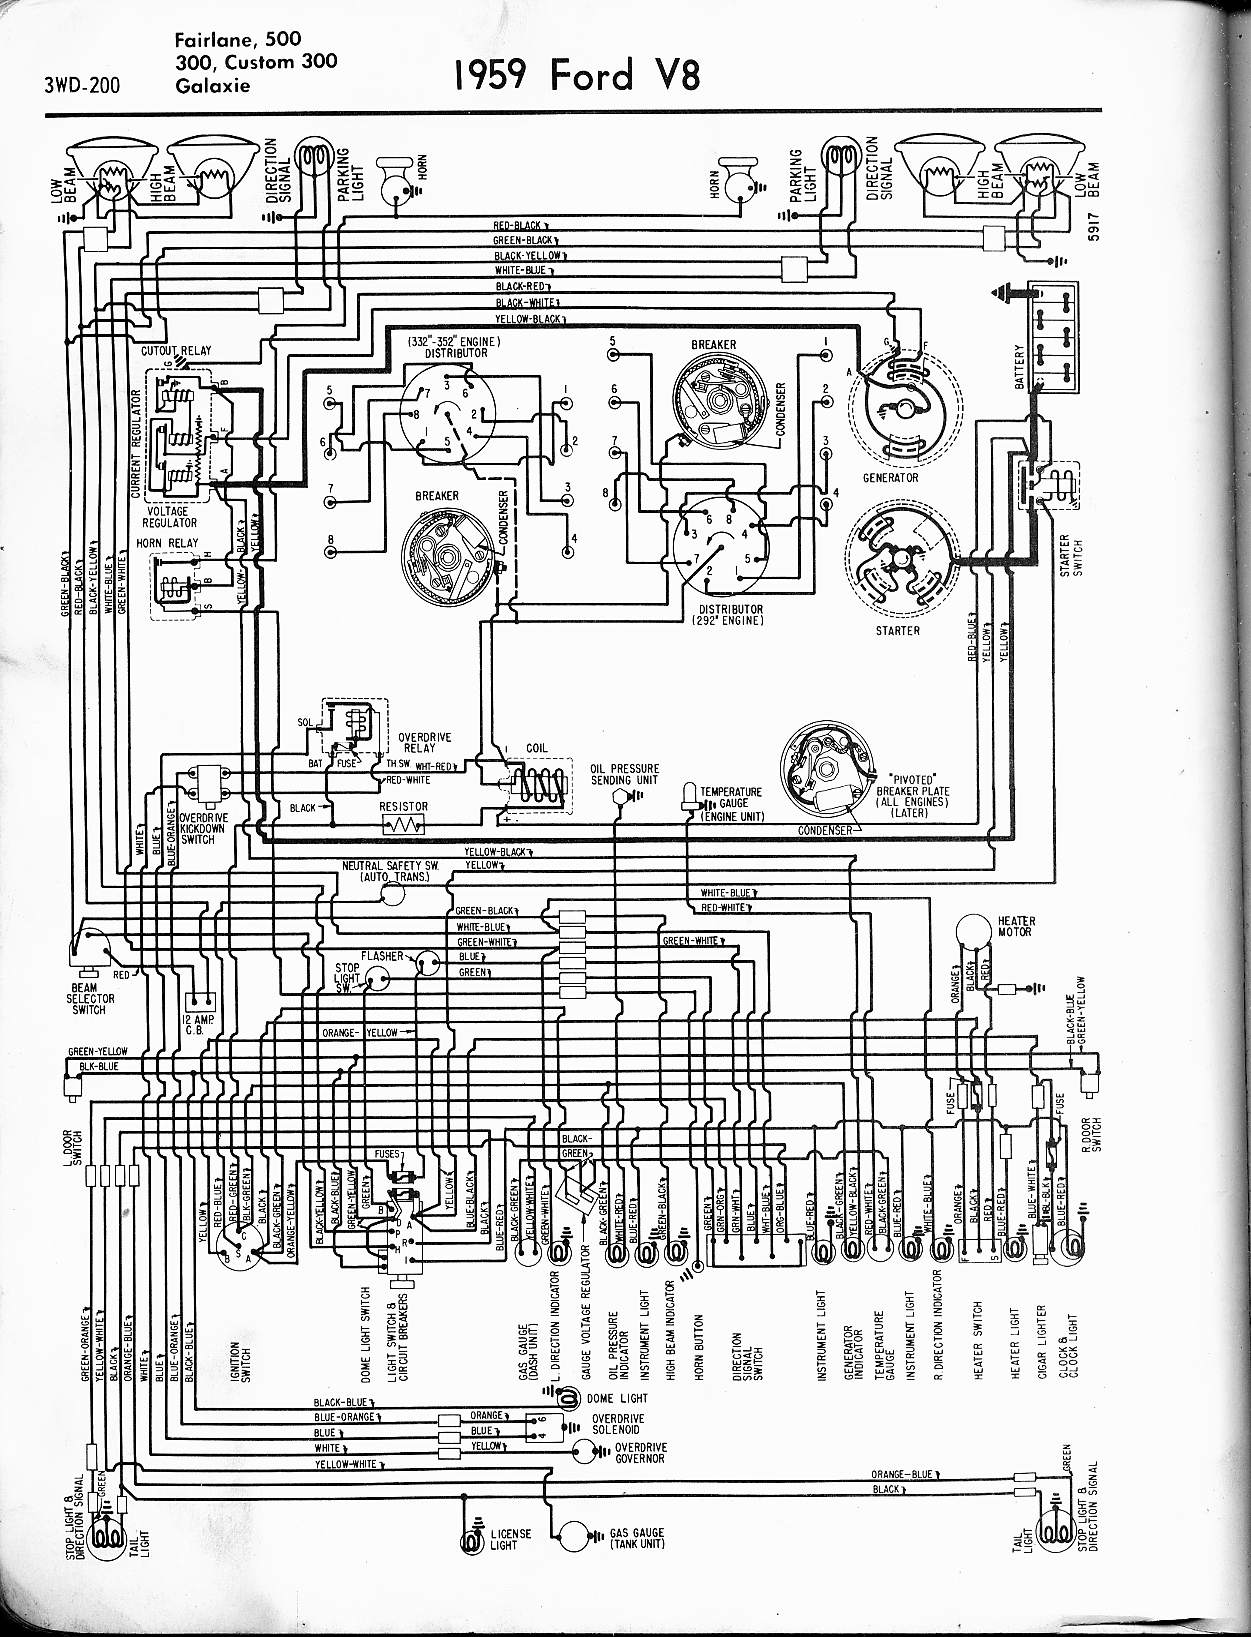 1968 Ford Galaxie Engine Diagram Reinvent Your Wiring 1967 Dodge Charger Diagrams 1963 Dash Board Schematics Rh Parntesis Co Exhaust System